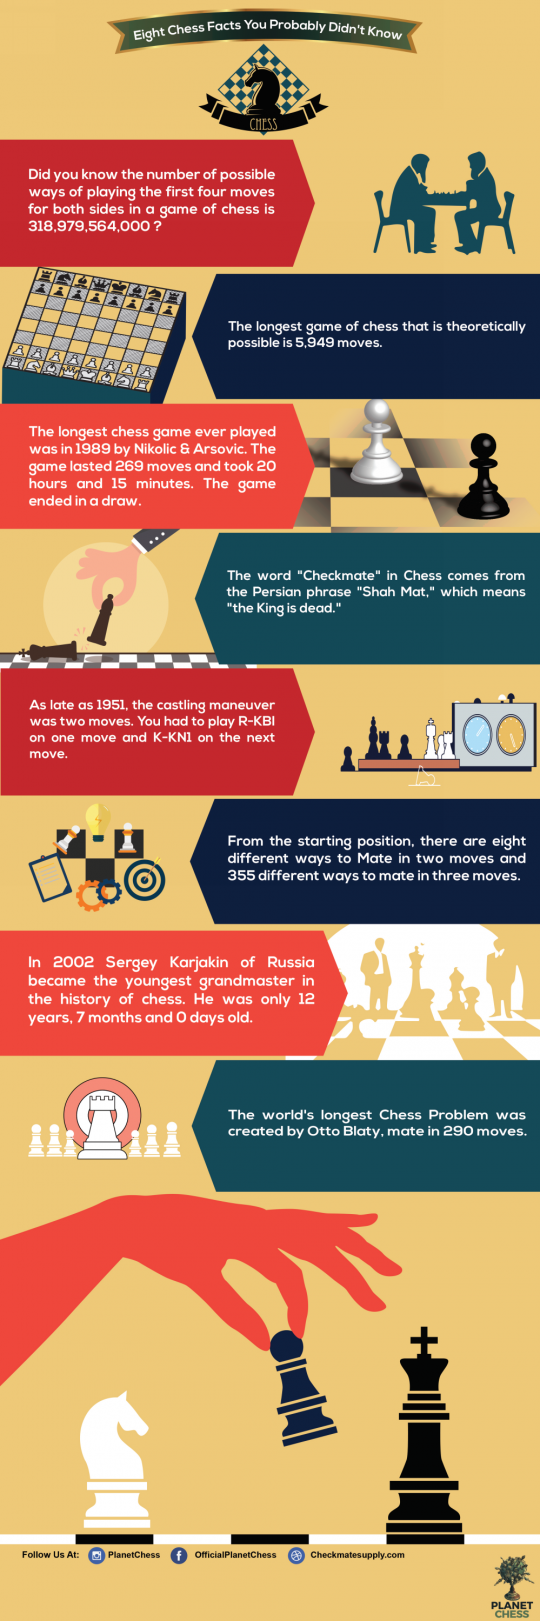 Eight Chess Facts You Probably Didn